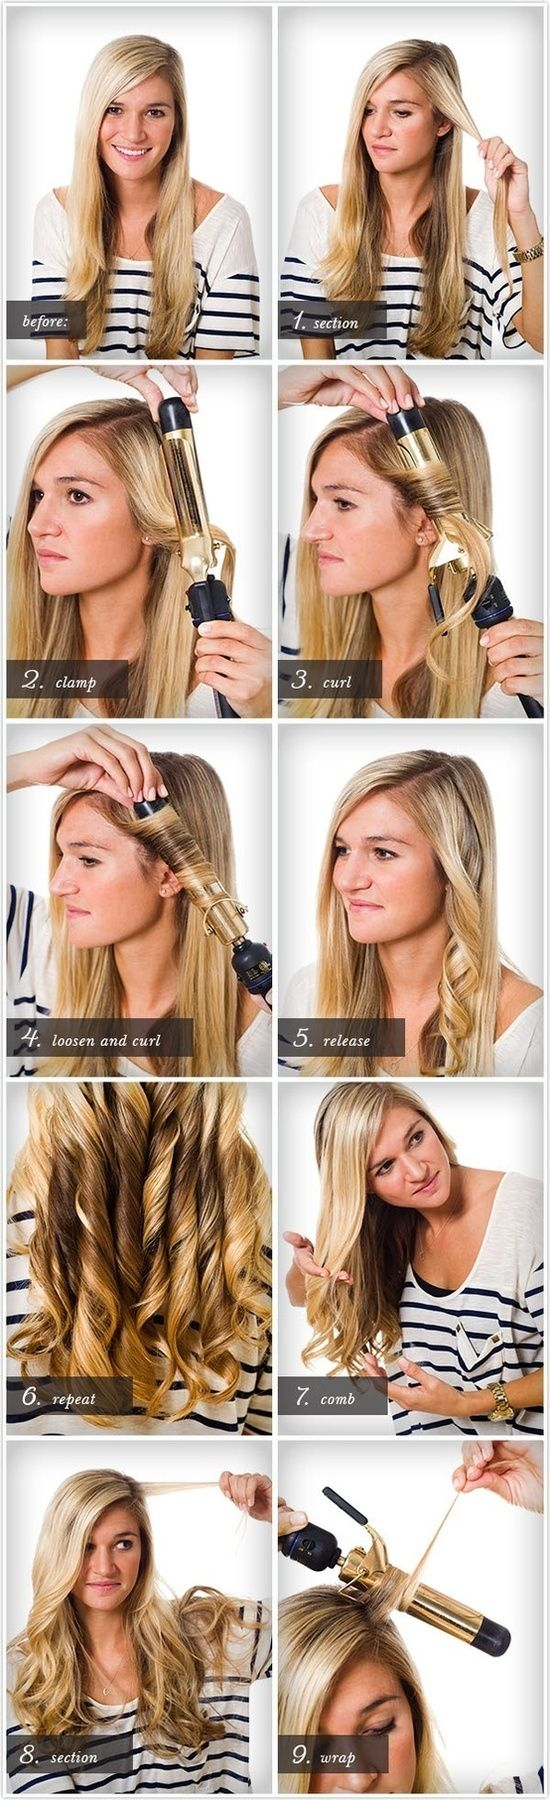 Easiest way to curl your own hair with a curling iron